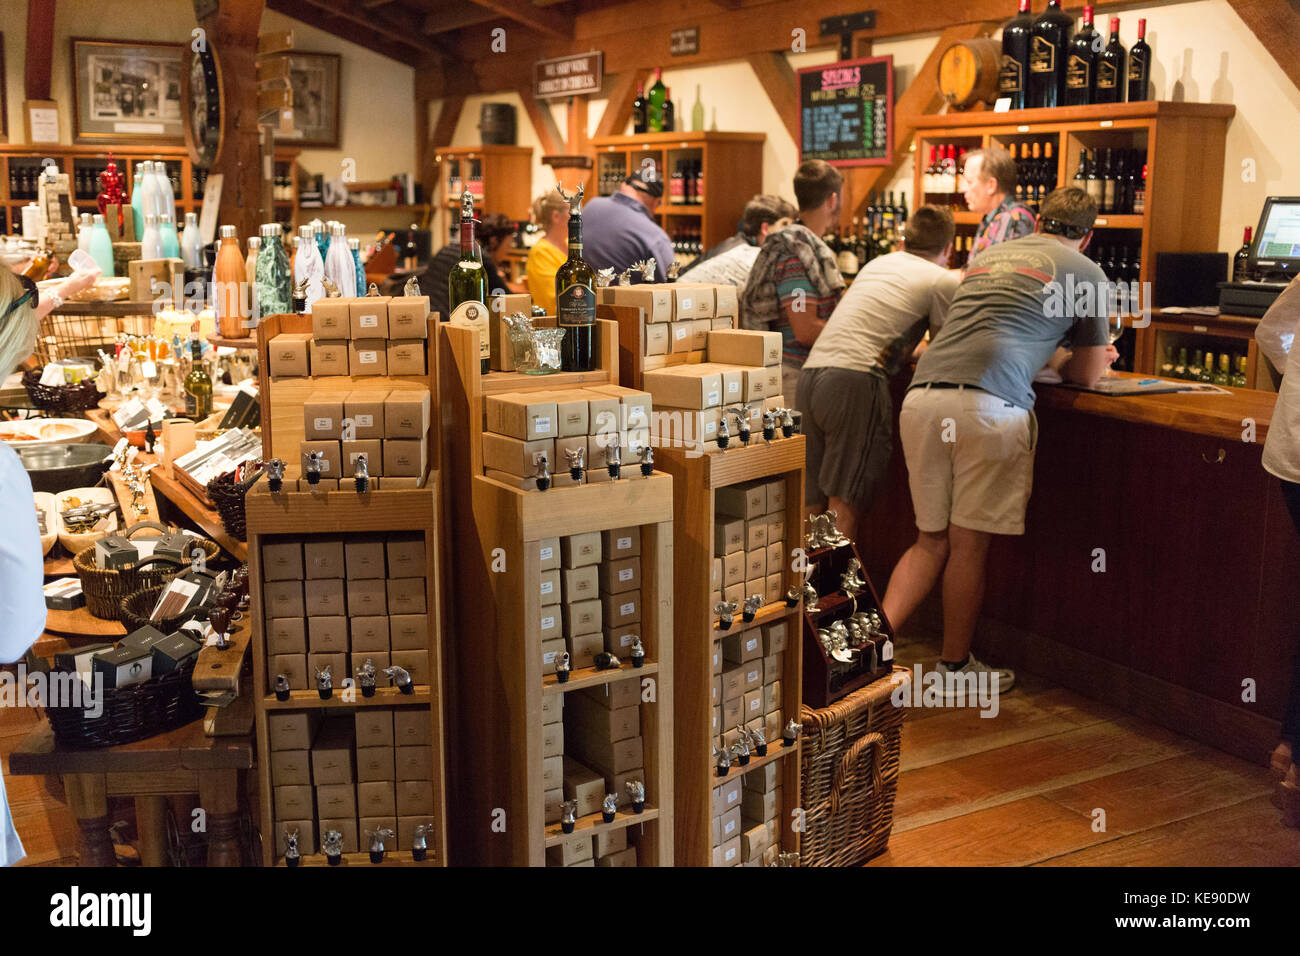 Gift shop in a Napa Valley winery